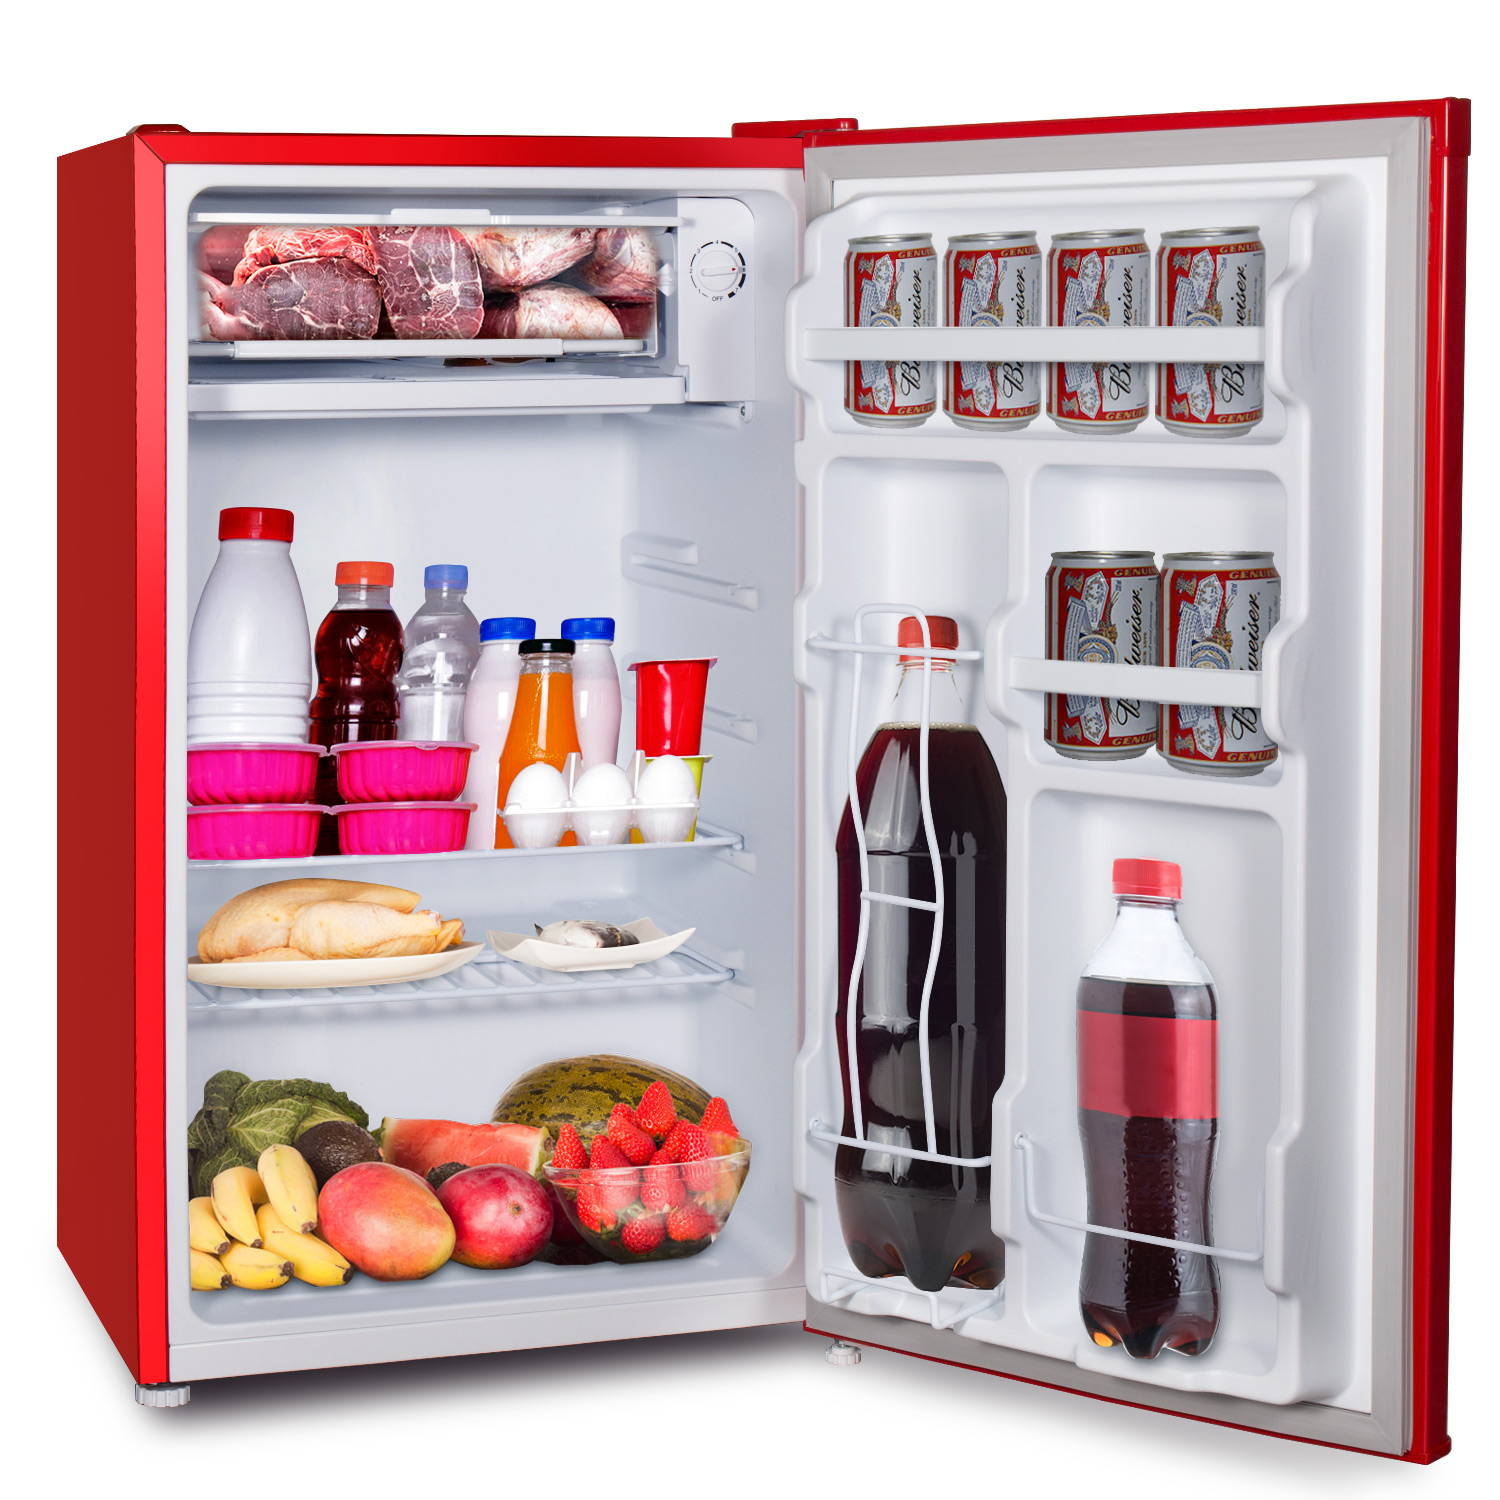 Aposen one door and large capacity refrigerator